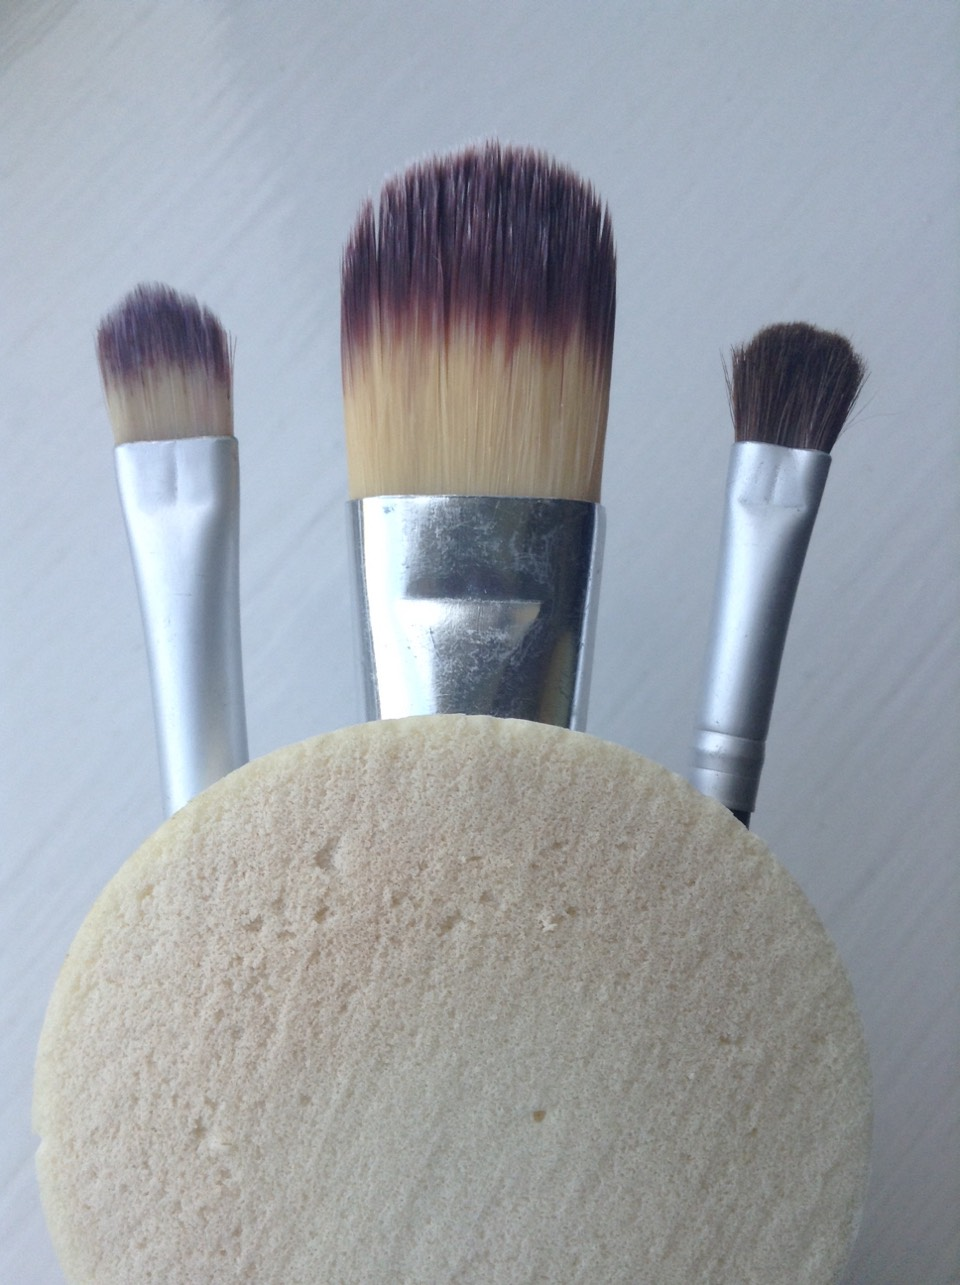 Remember Sponges should be cleaned after every couple of uses. I clean mine once/twice a week.  Brushes should be cleaned every other week.